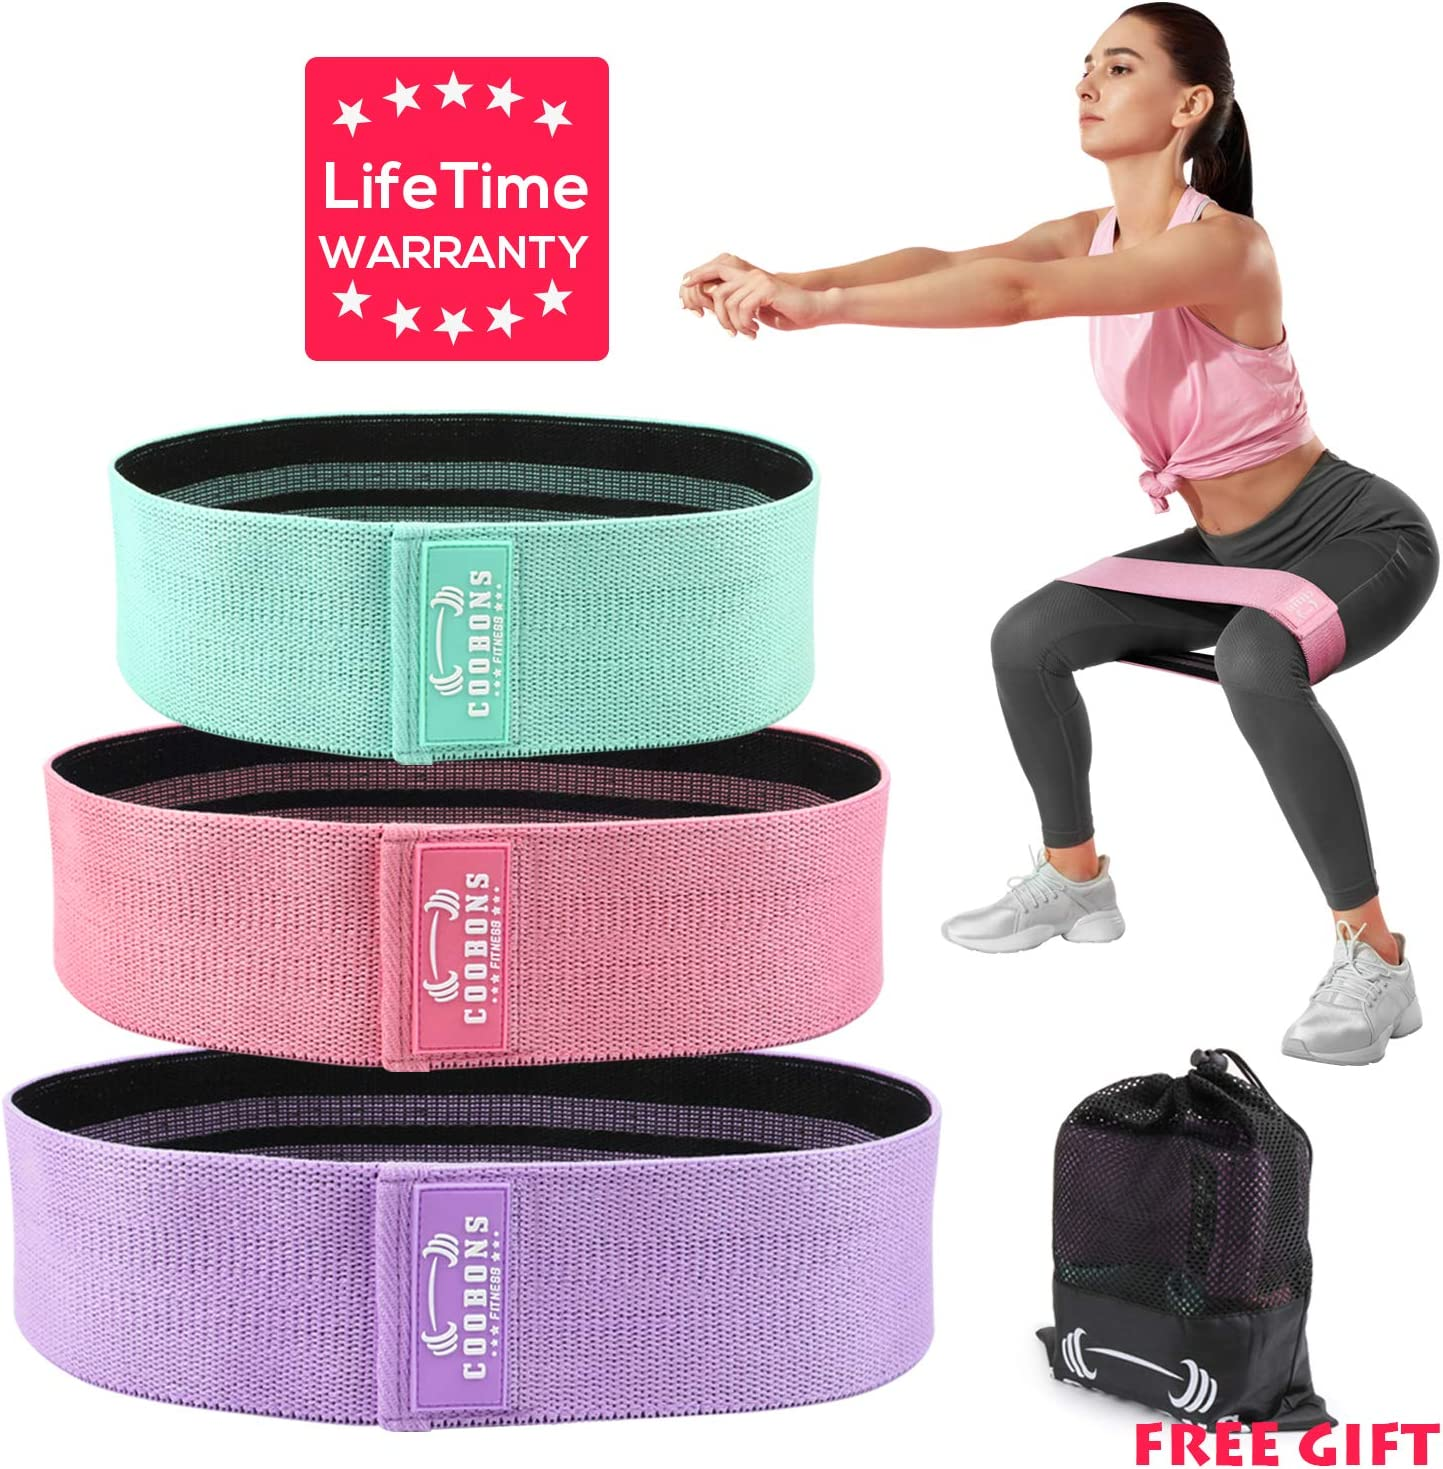 Resistance Bands for Legs and Butt,Exercise Bands Set Booty Bands Hip Bands Wide Workout Bands Resistance Loop Bands Anti Slip Circle Fitness Band Elastic (Set 3)